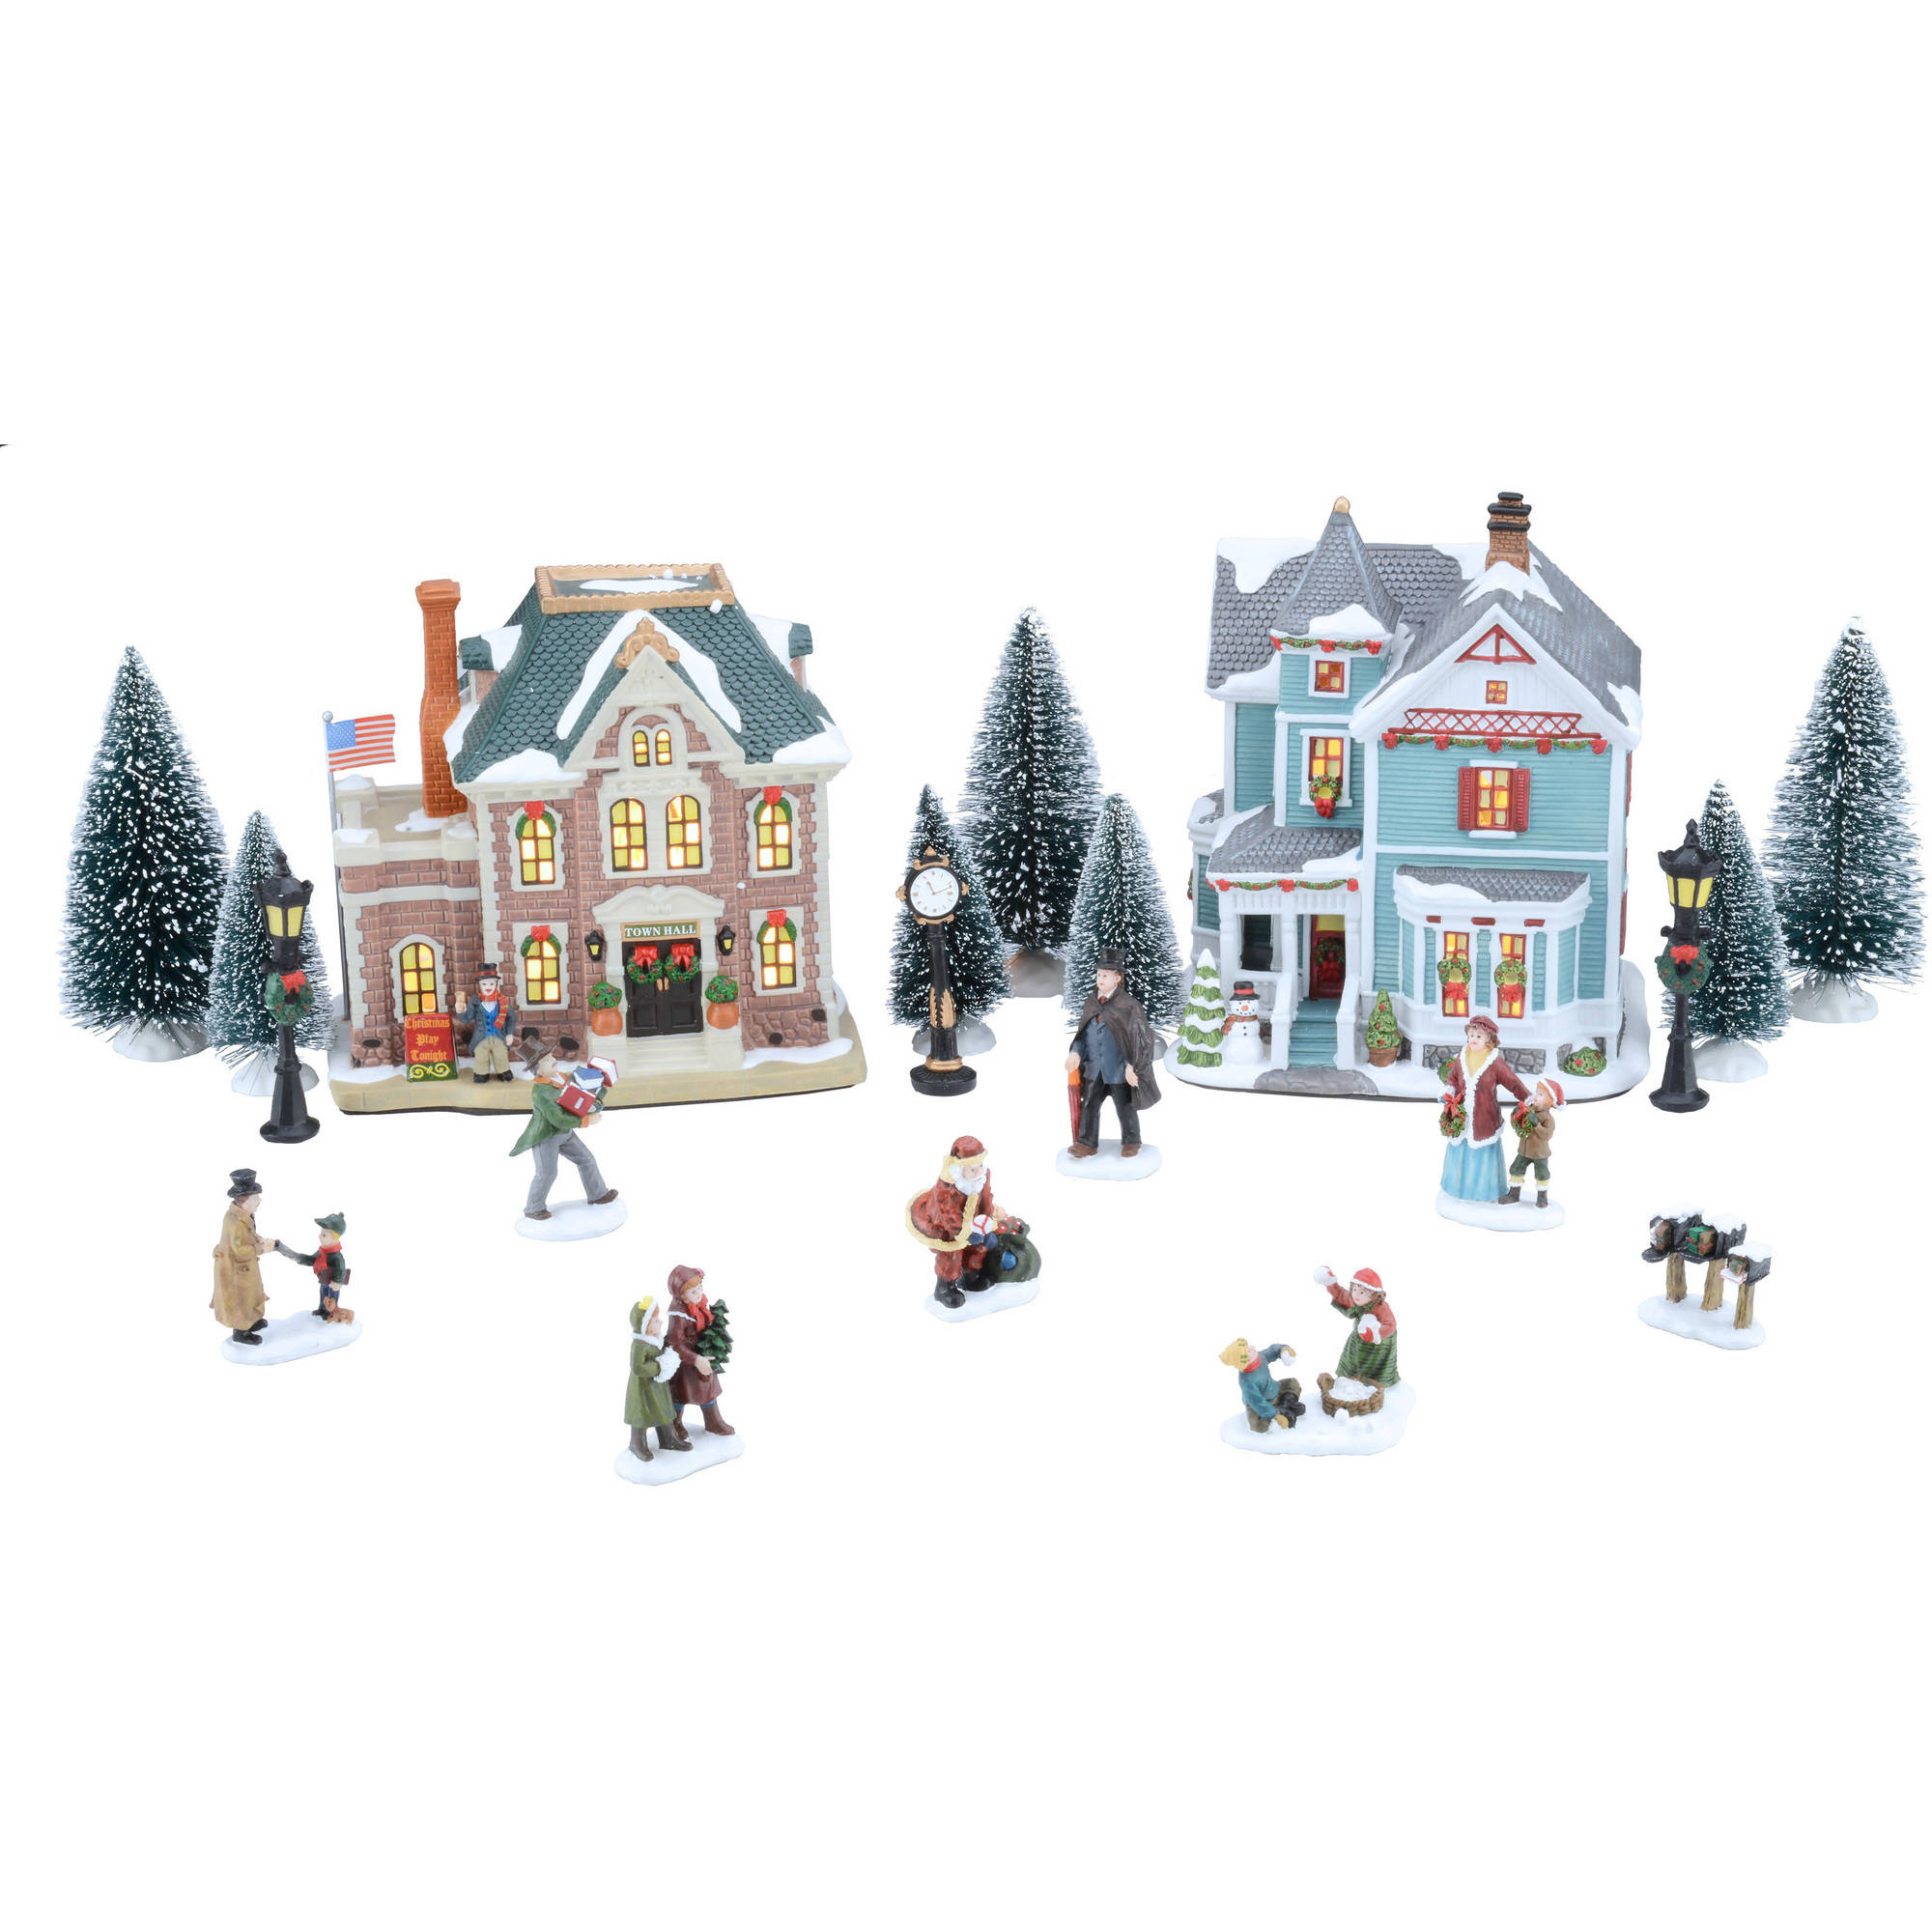 holiday time 20 piece village set christmas village walmart comholiday time 20 piece village set christmas village